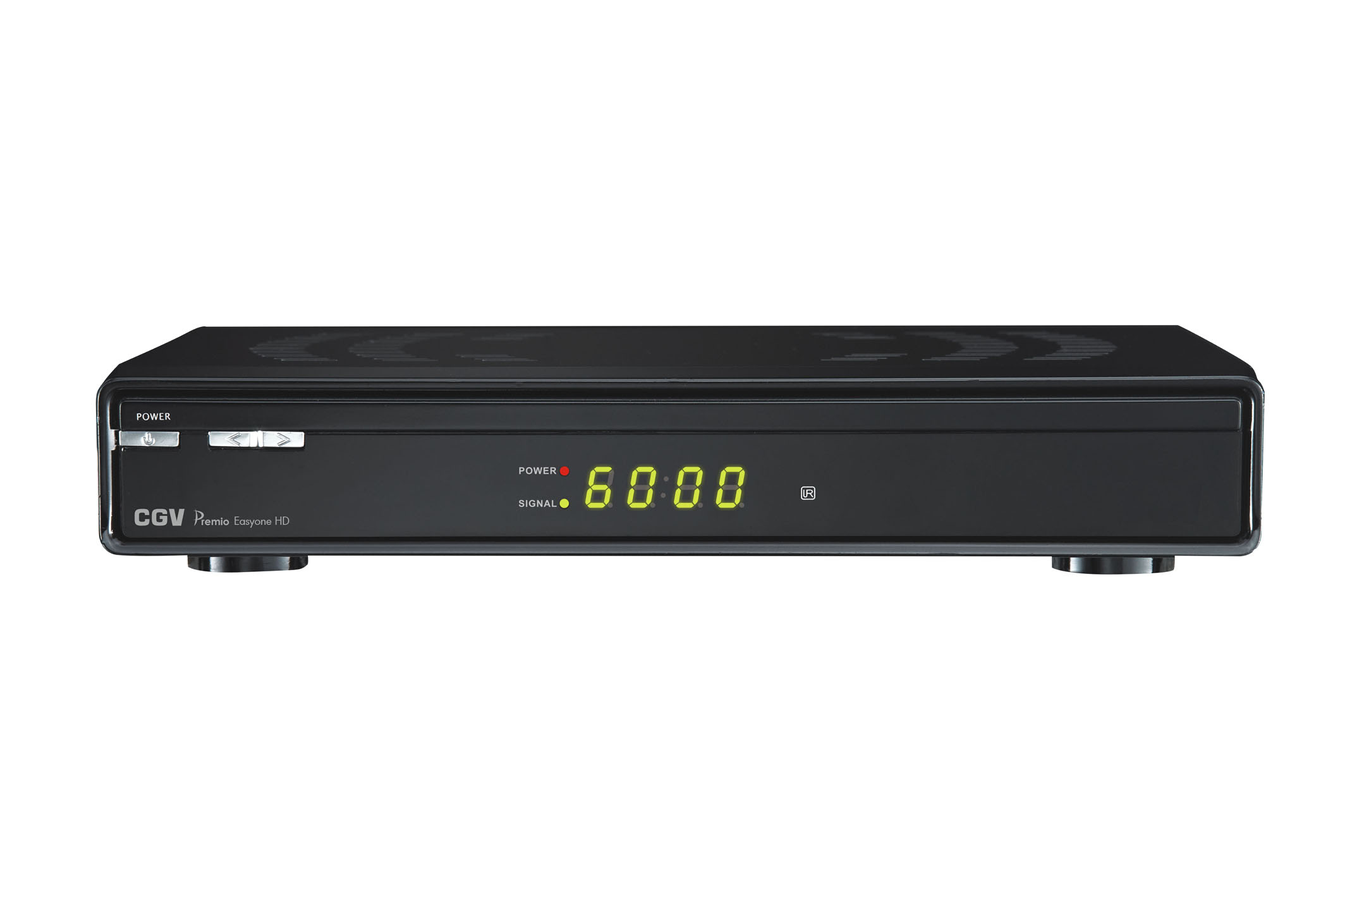 Decodeur satellite cgv 70027 premio easyone hd 70027premioeasyonehd 3696928 darty - Darty decodeur tnt ...